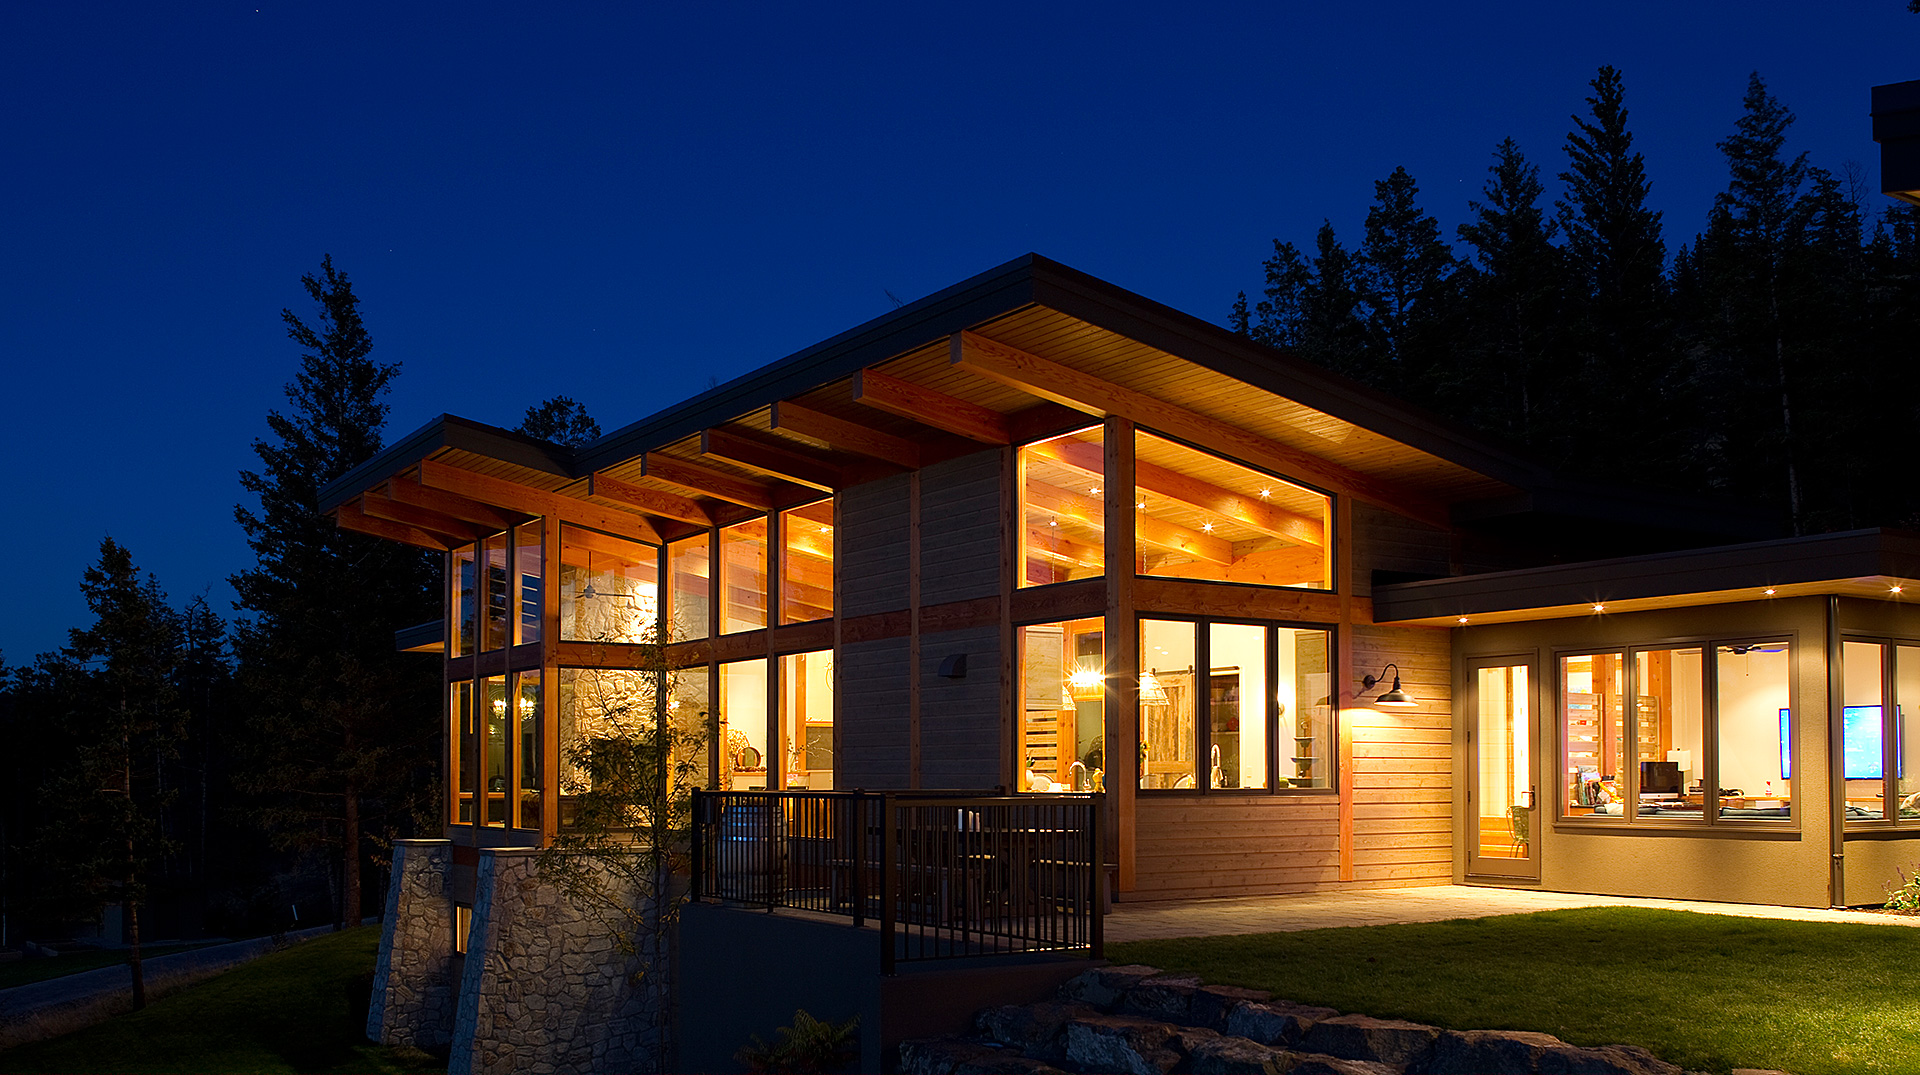 Contemporary timber frame residence at night